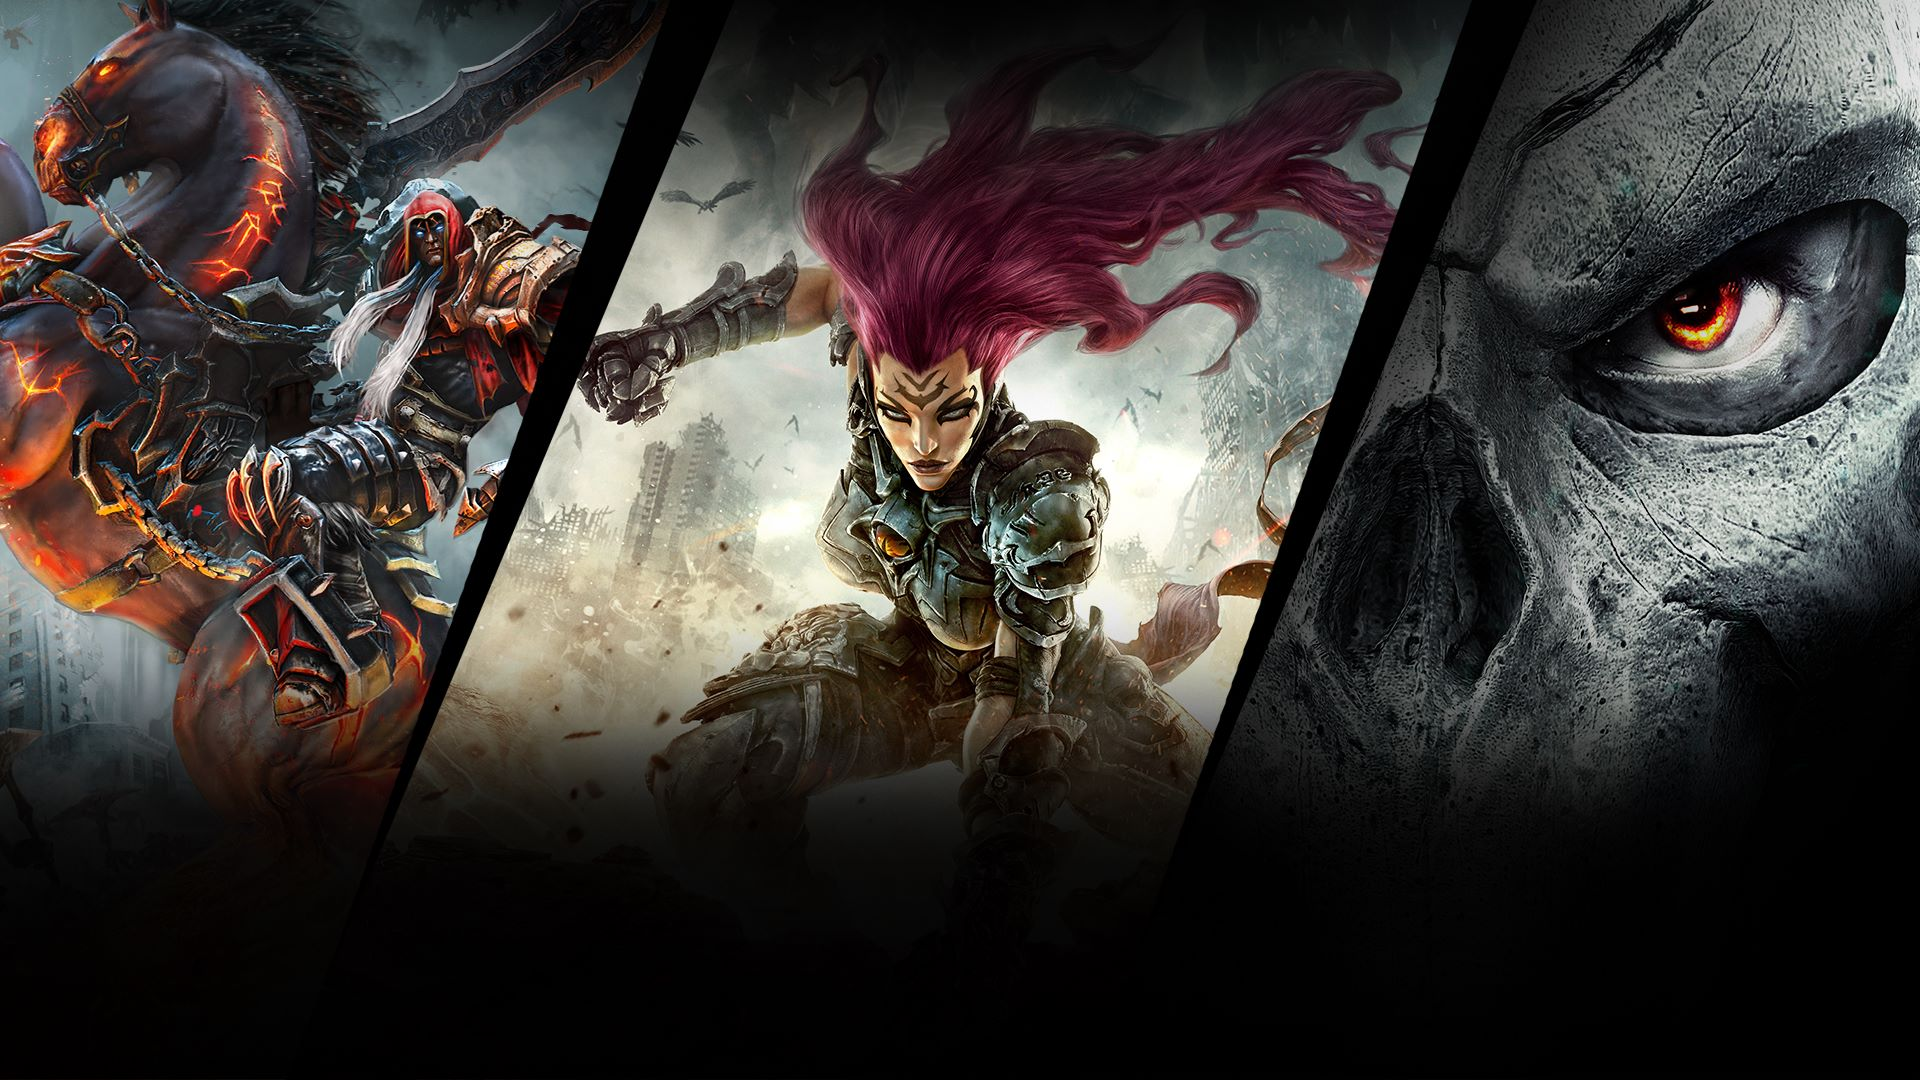 Darksiders 3: The story so far | Blast Away the Game Review